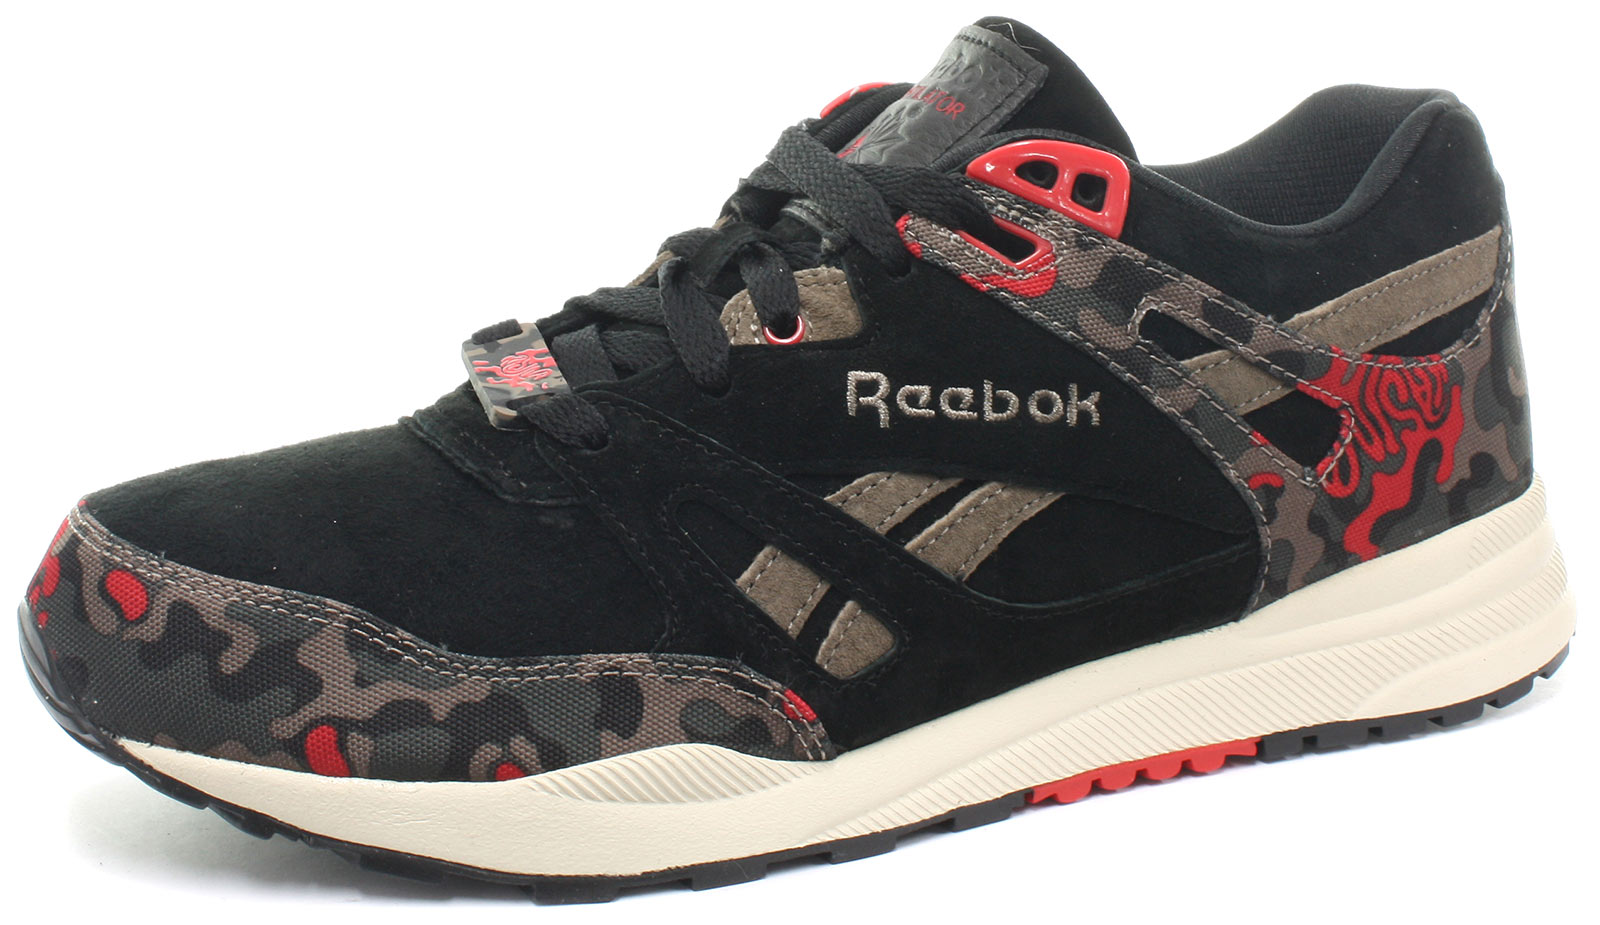 New Reebok x Kasina Ventilator CNT Mens Rare Retro Trainers ALL SIZES